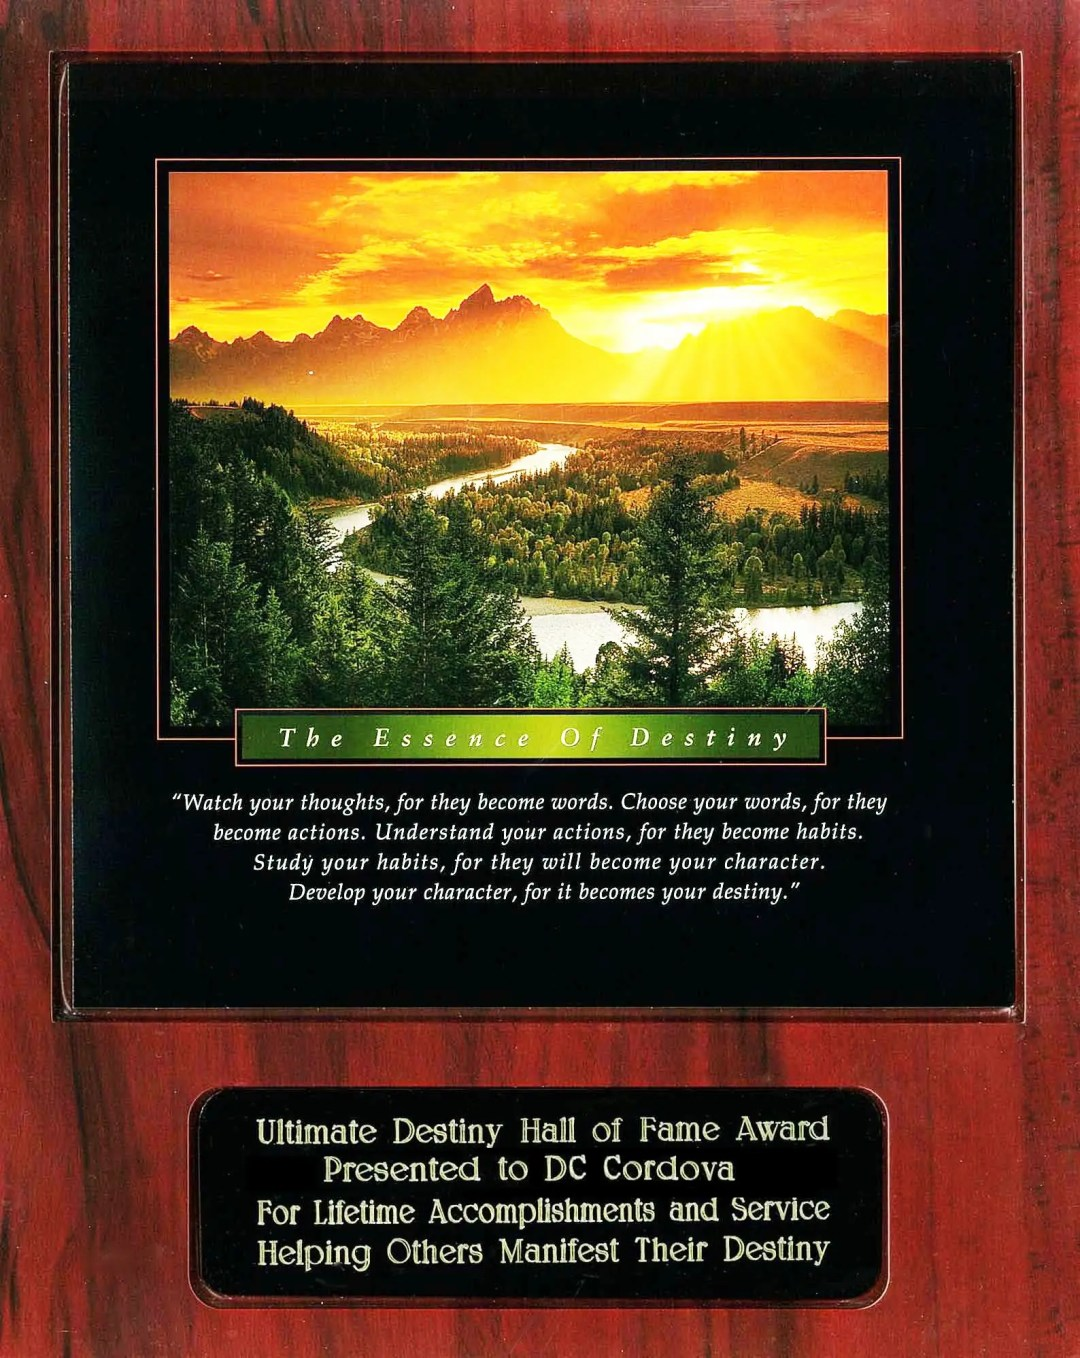 DC Cordova Ultimate Destiny Hall of Fame Award Recipient Plaque